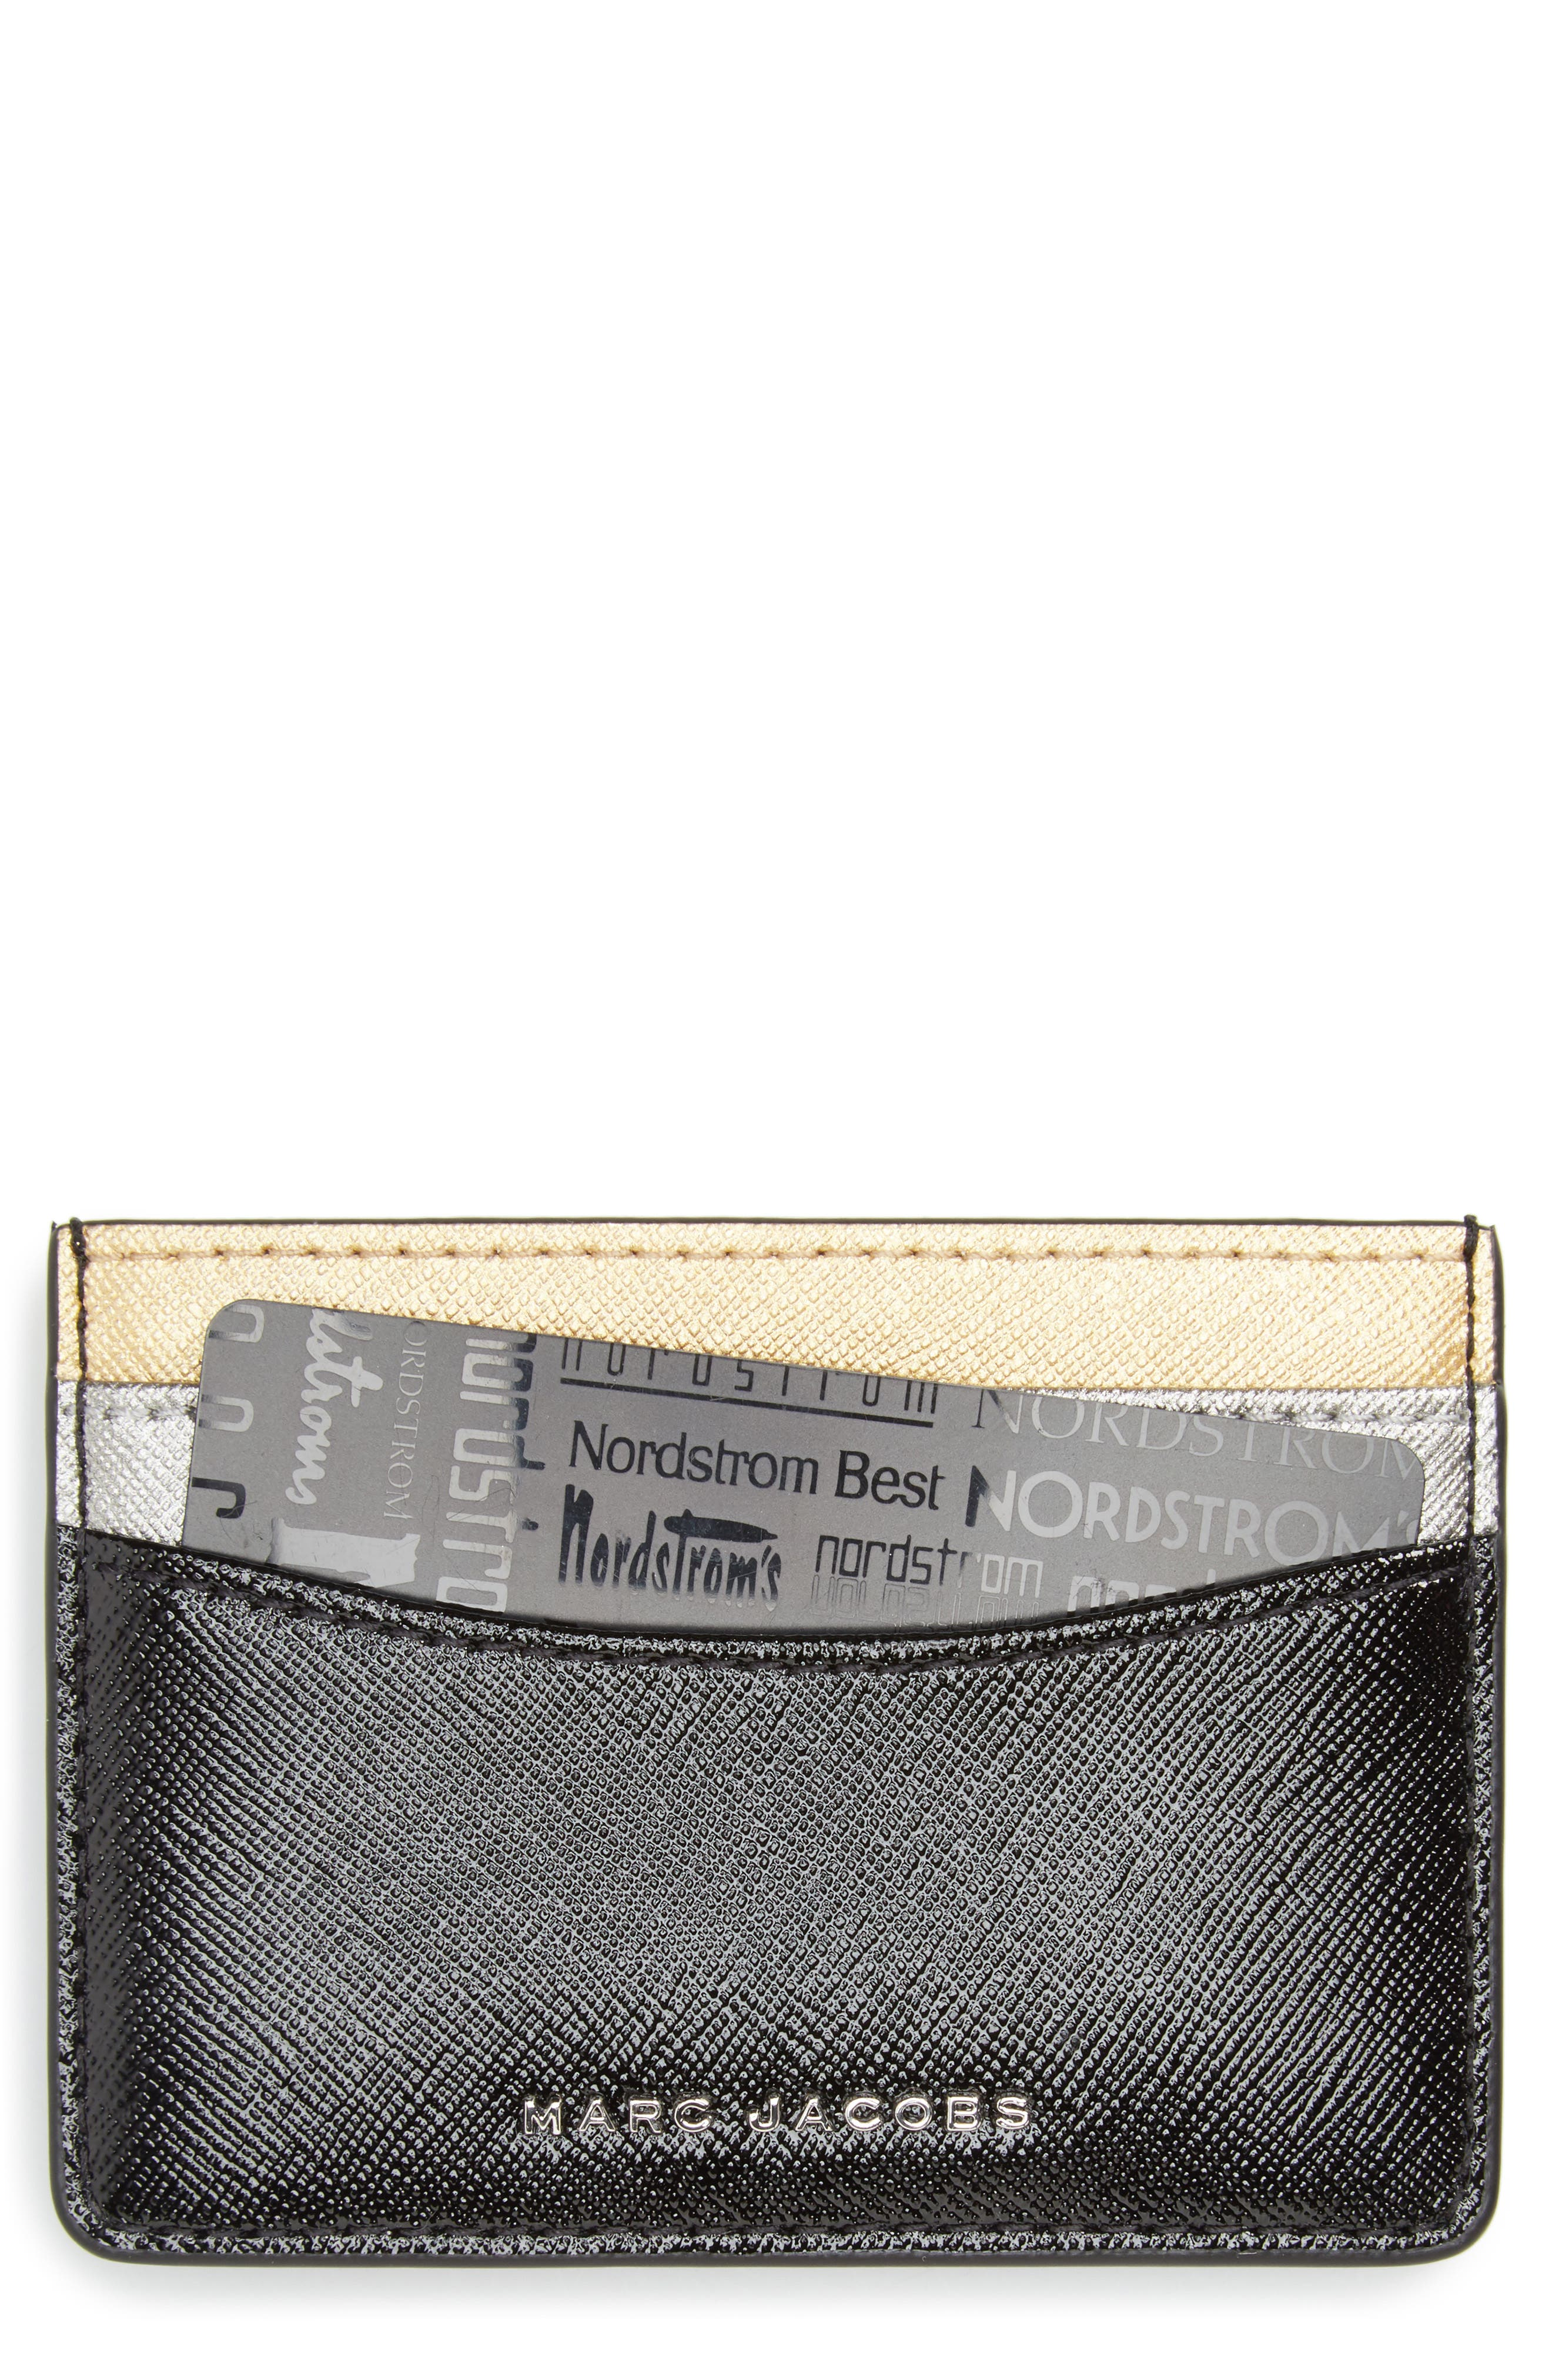 MARC JACOBS Tricolor Saffiano Leather Card Case